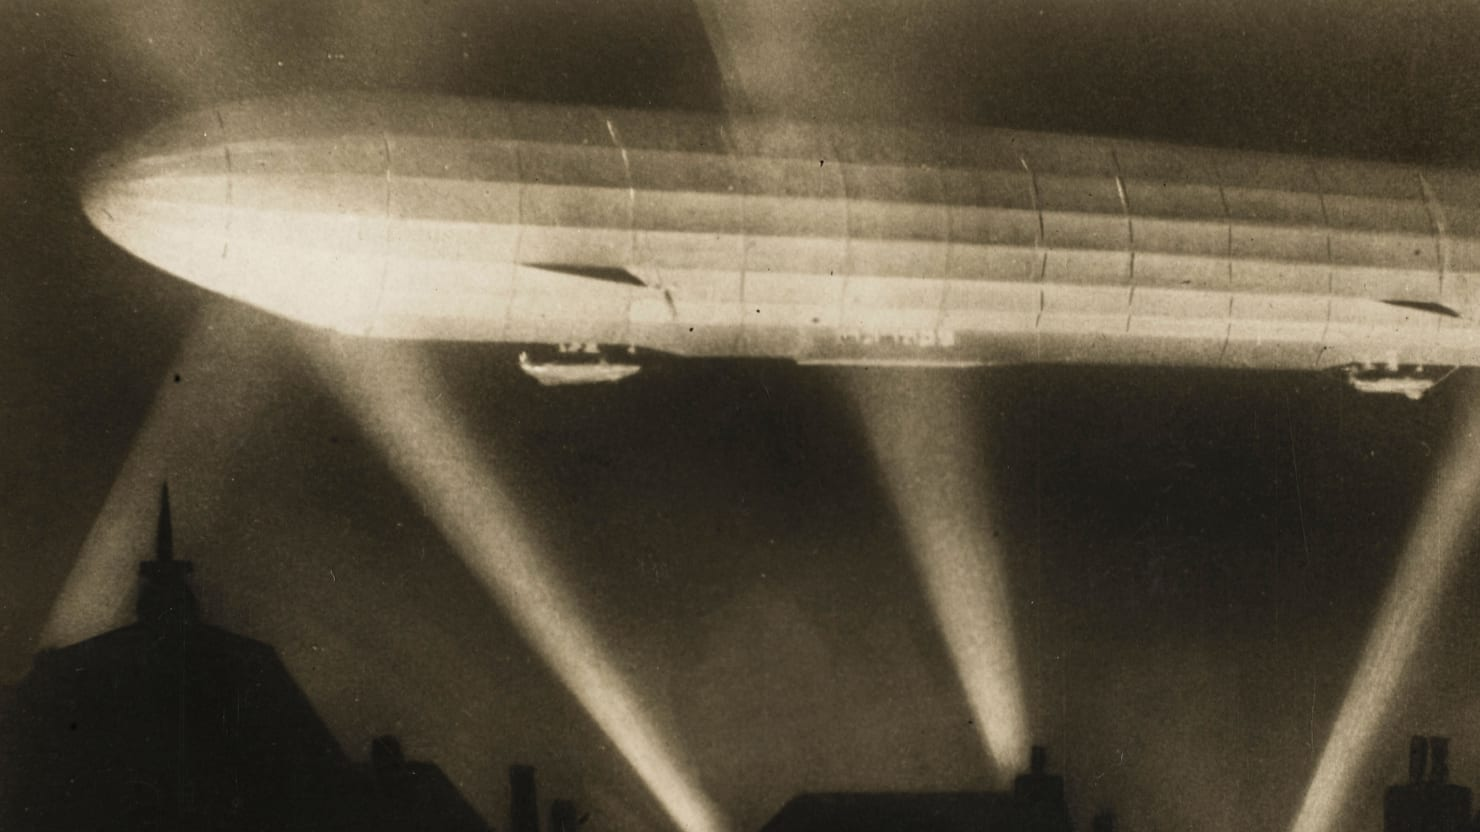 The Zeppelin That Bombed London and Changed the World